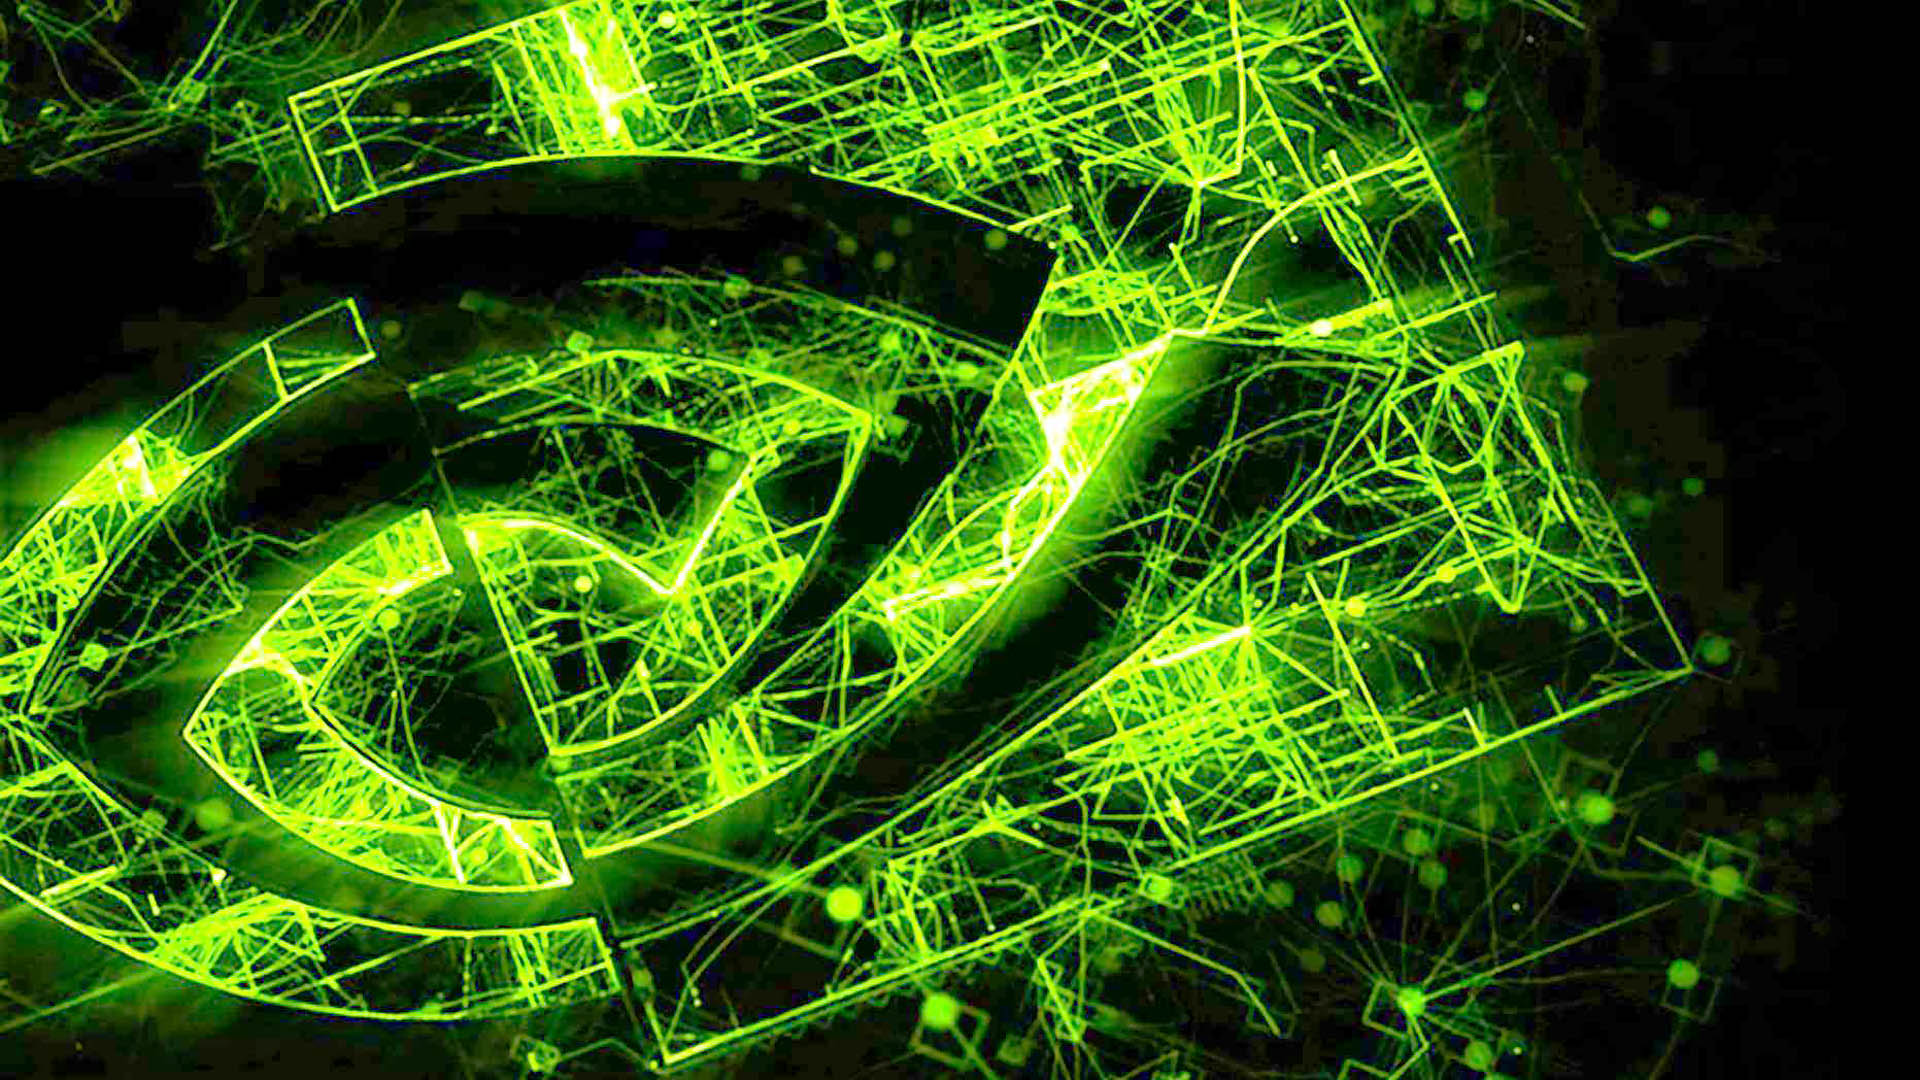 Nvidia recommends updating your GPU drivers immediately to